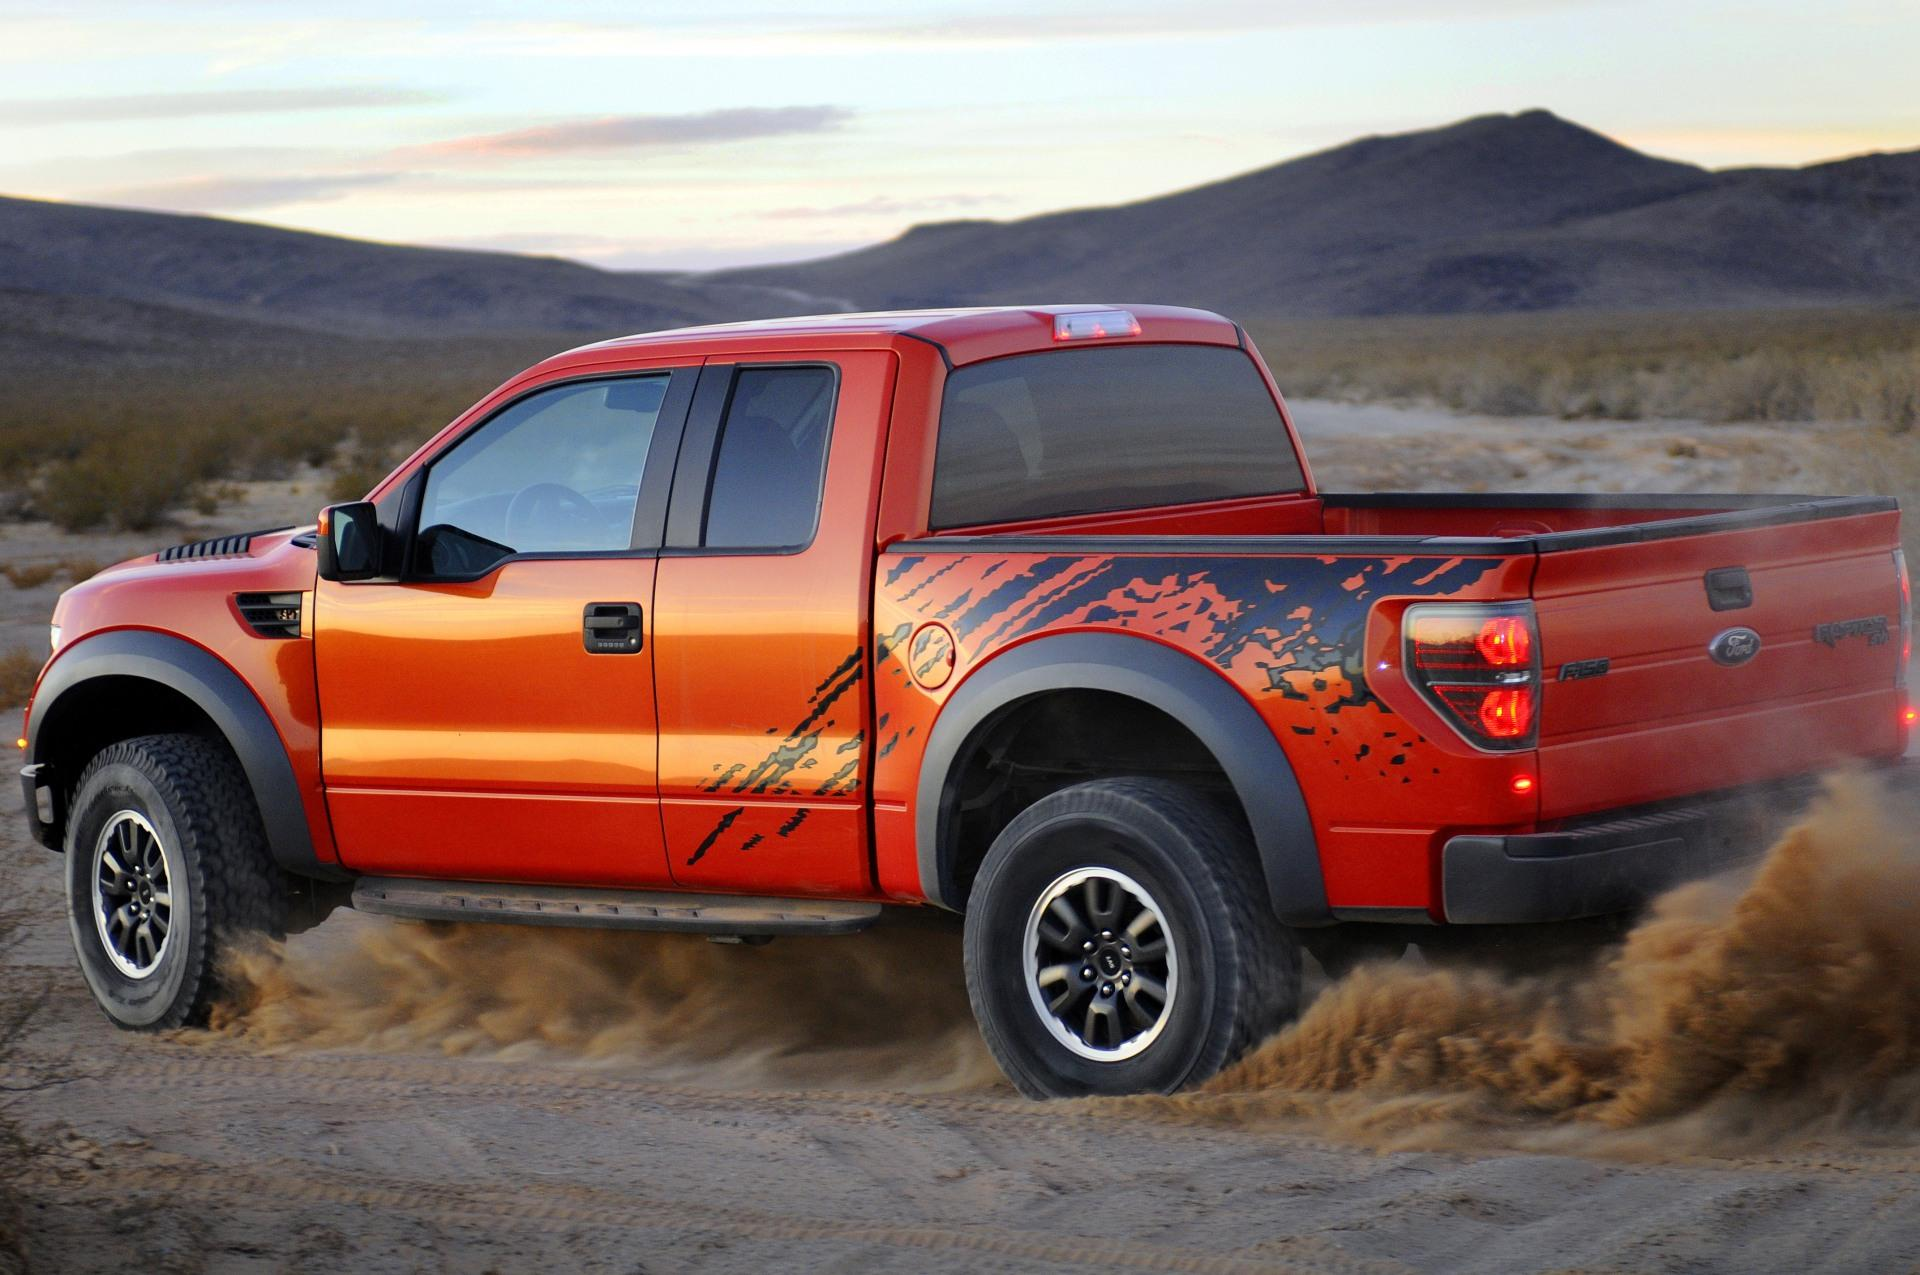 2010 Ford Raptor Wallpaper HD 1920x1275